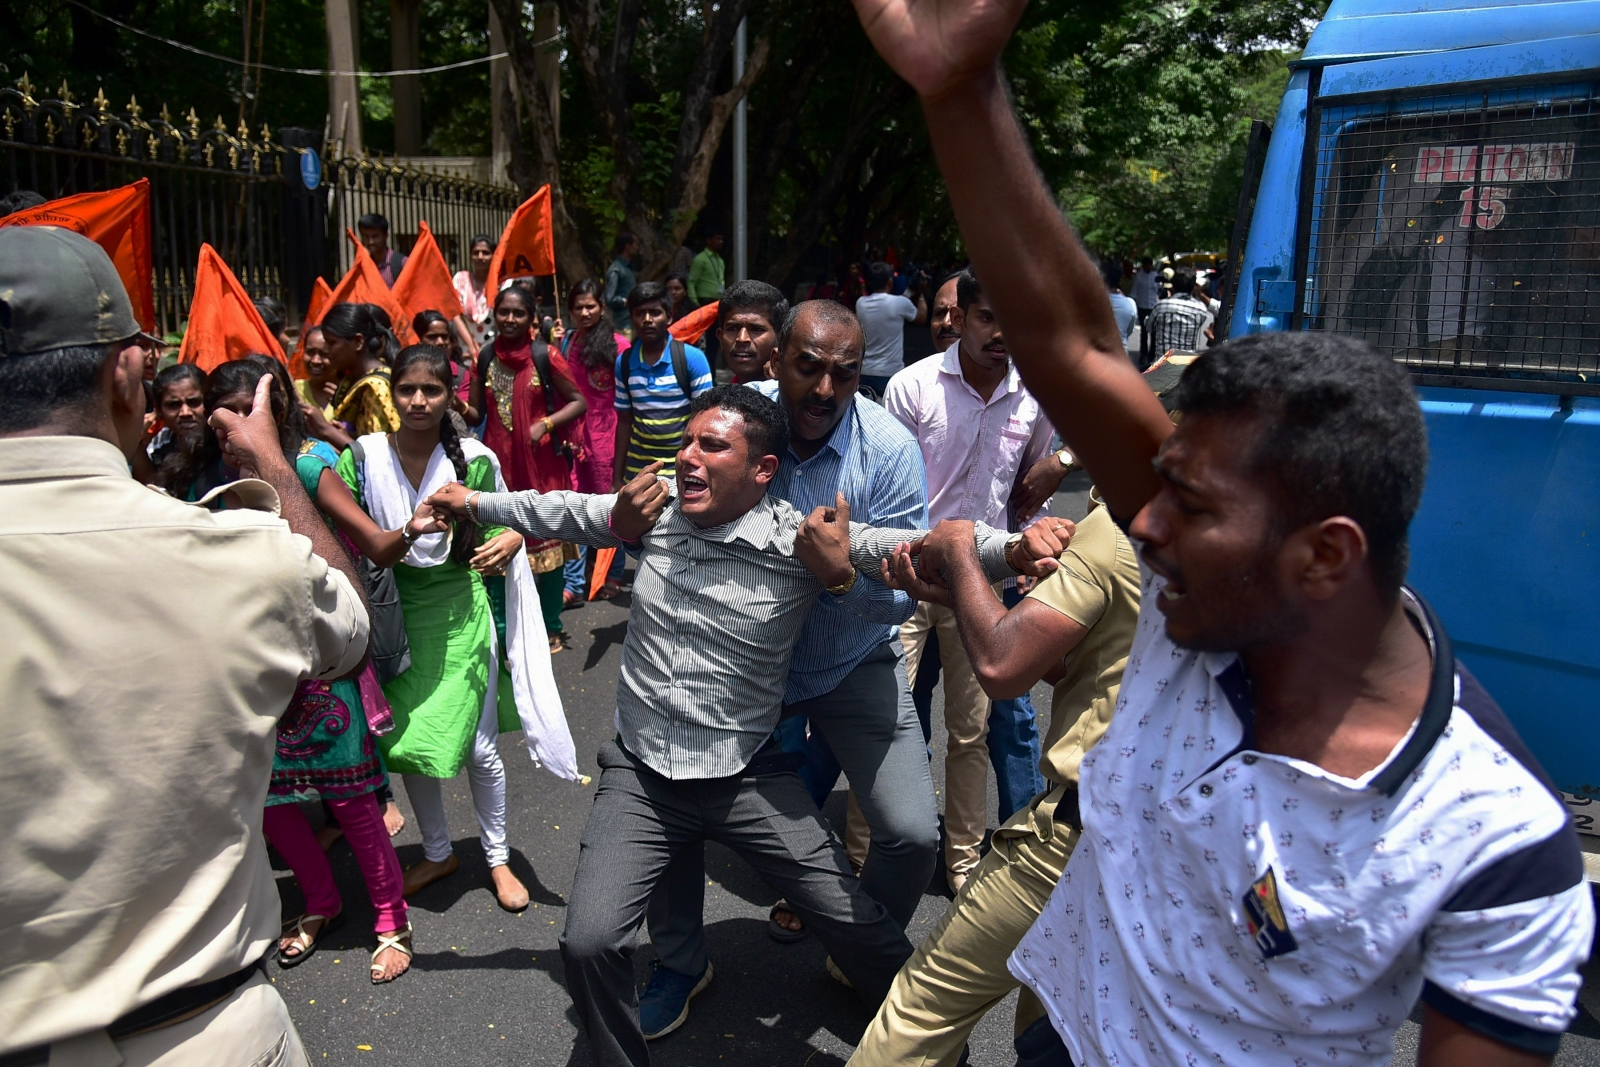 No let-up in anti-Amnesty protests by ABVP in Karnataka